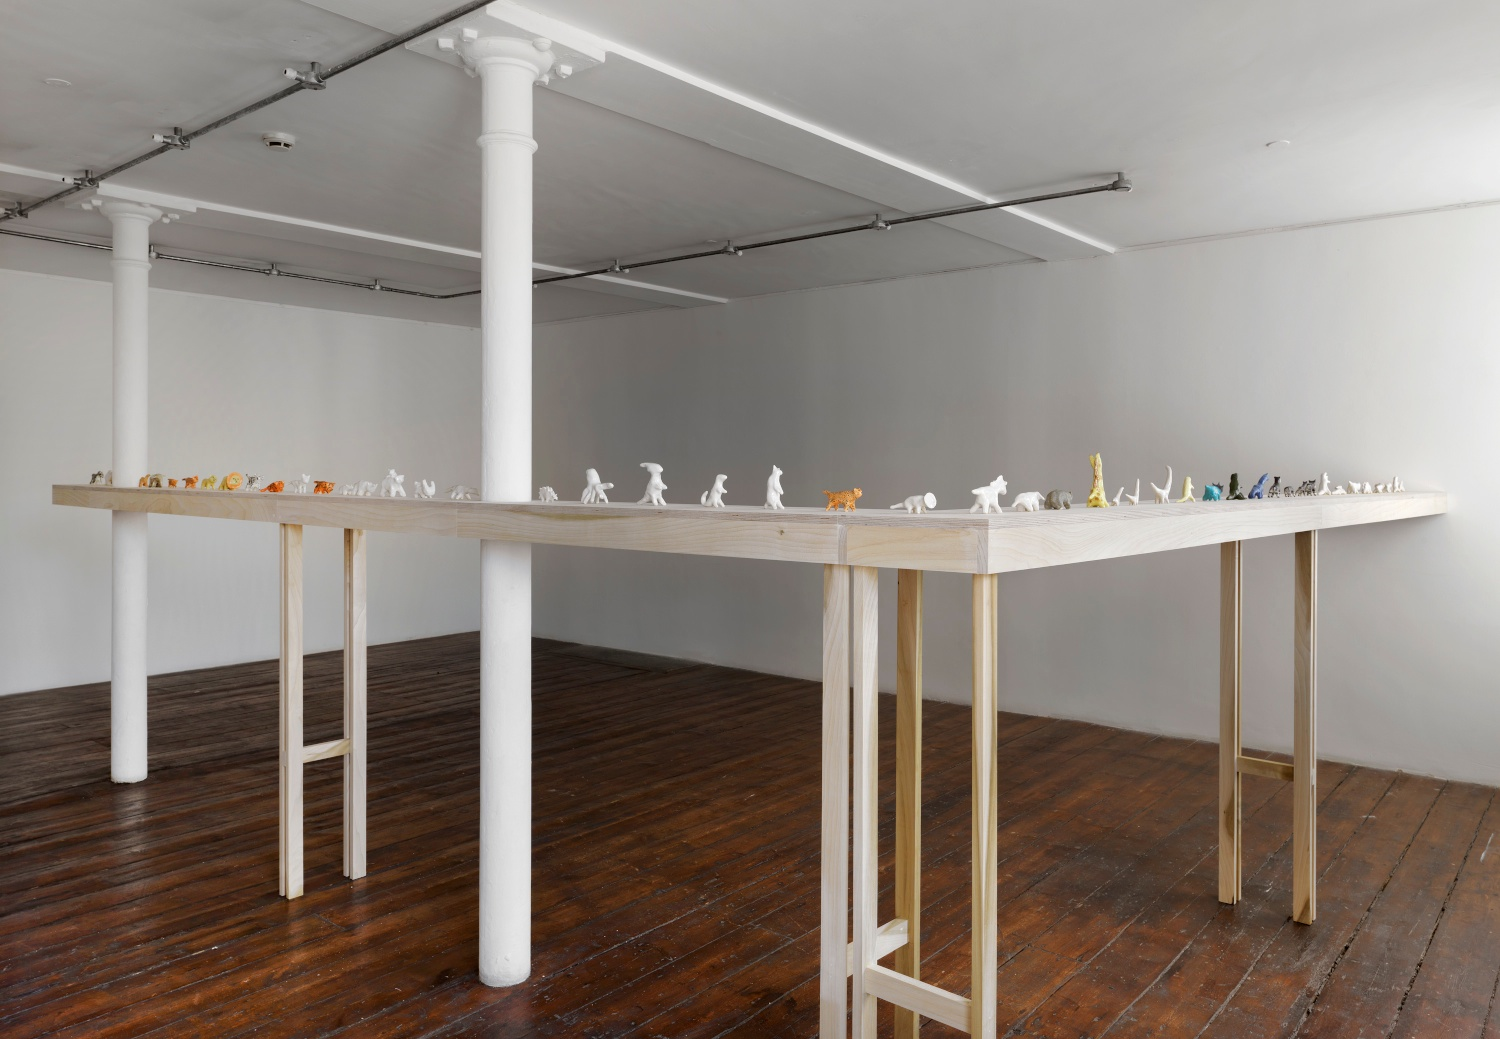 Shio Kusaka 2014 greengrassi, London Installation view